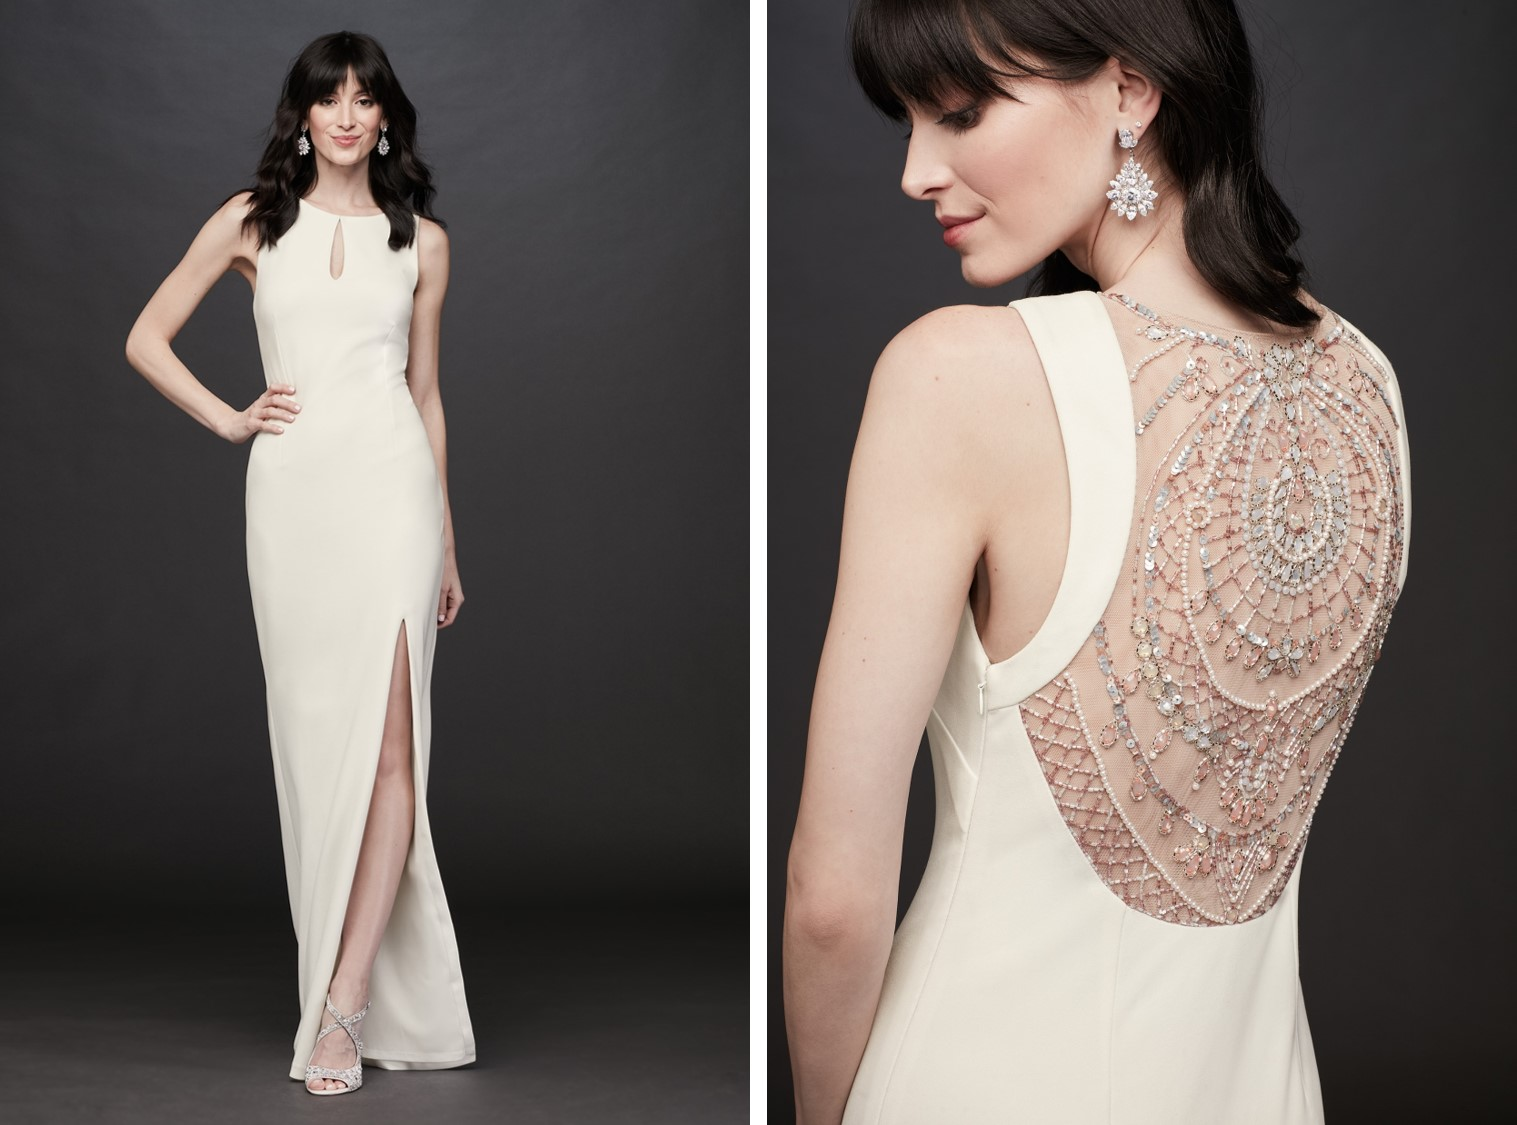 Bride in long white high-neck dress with beaded back details | After-party dresses from David's Bridal